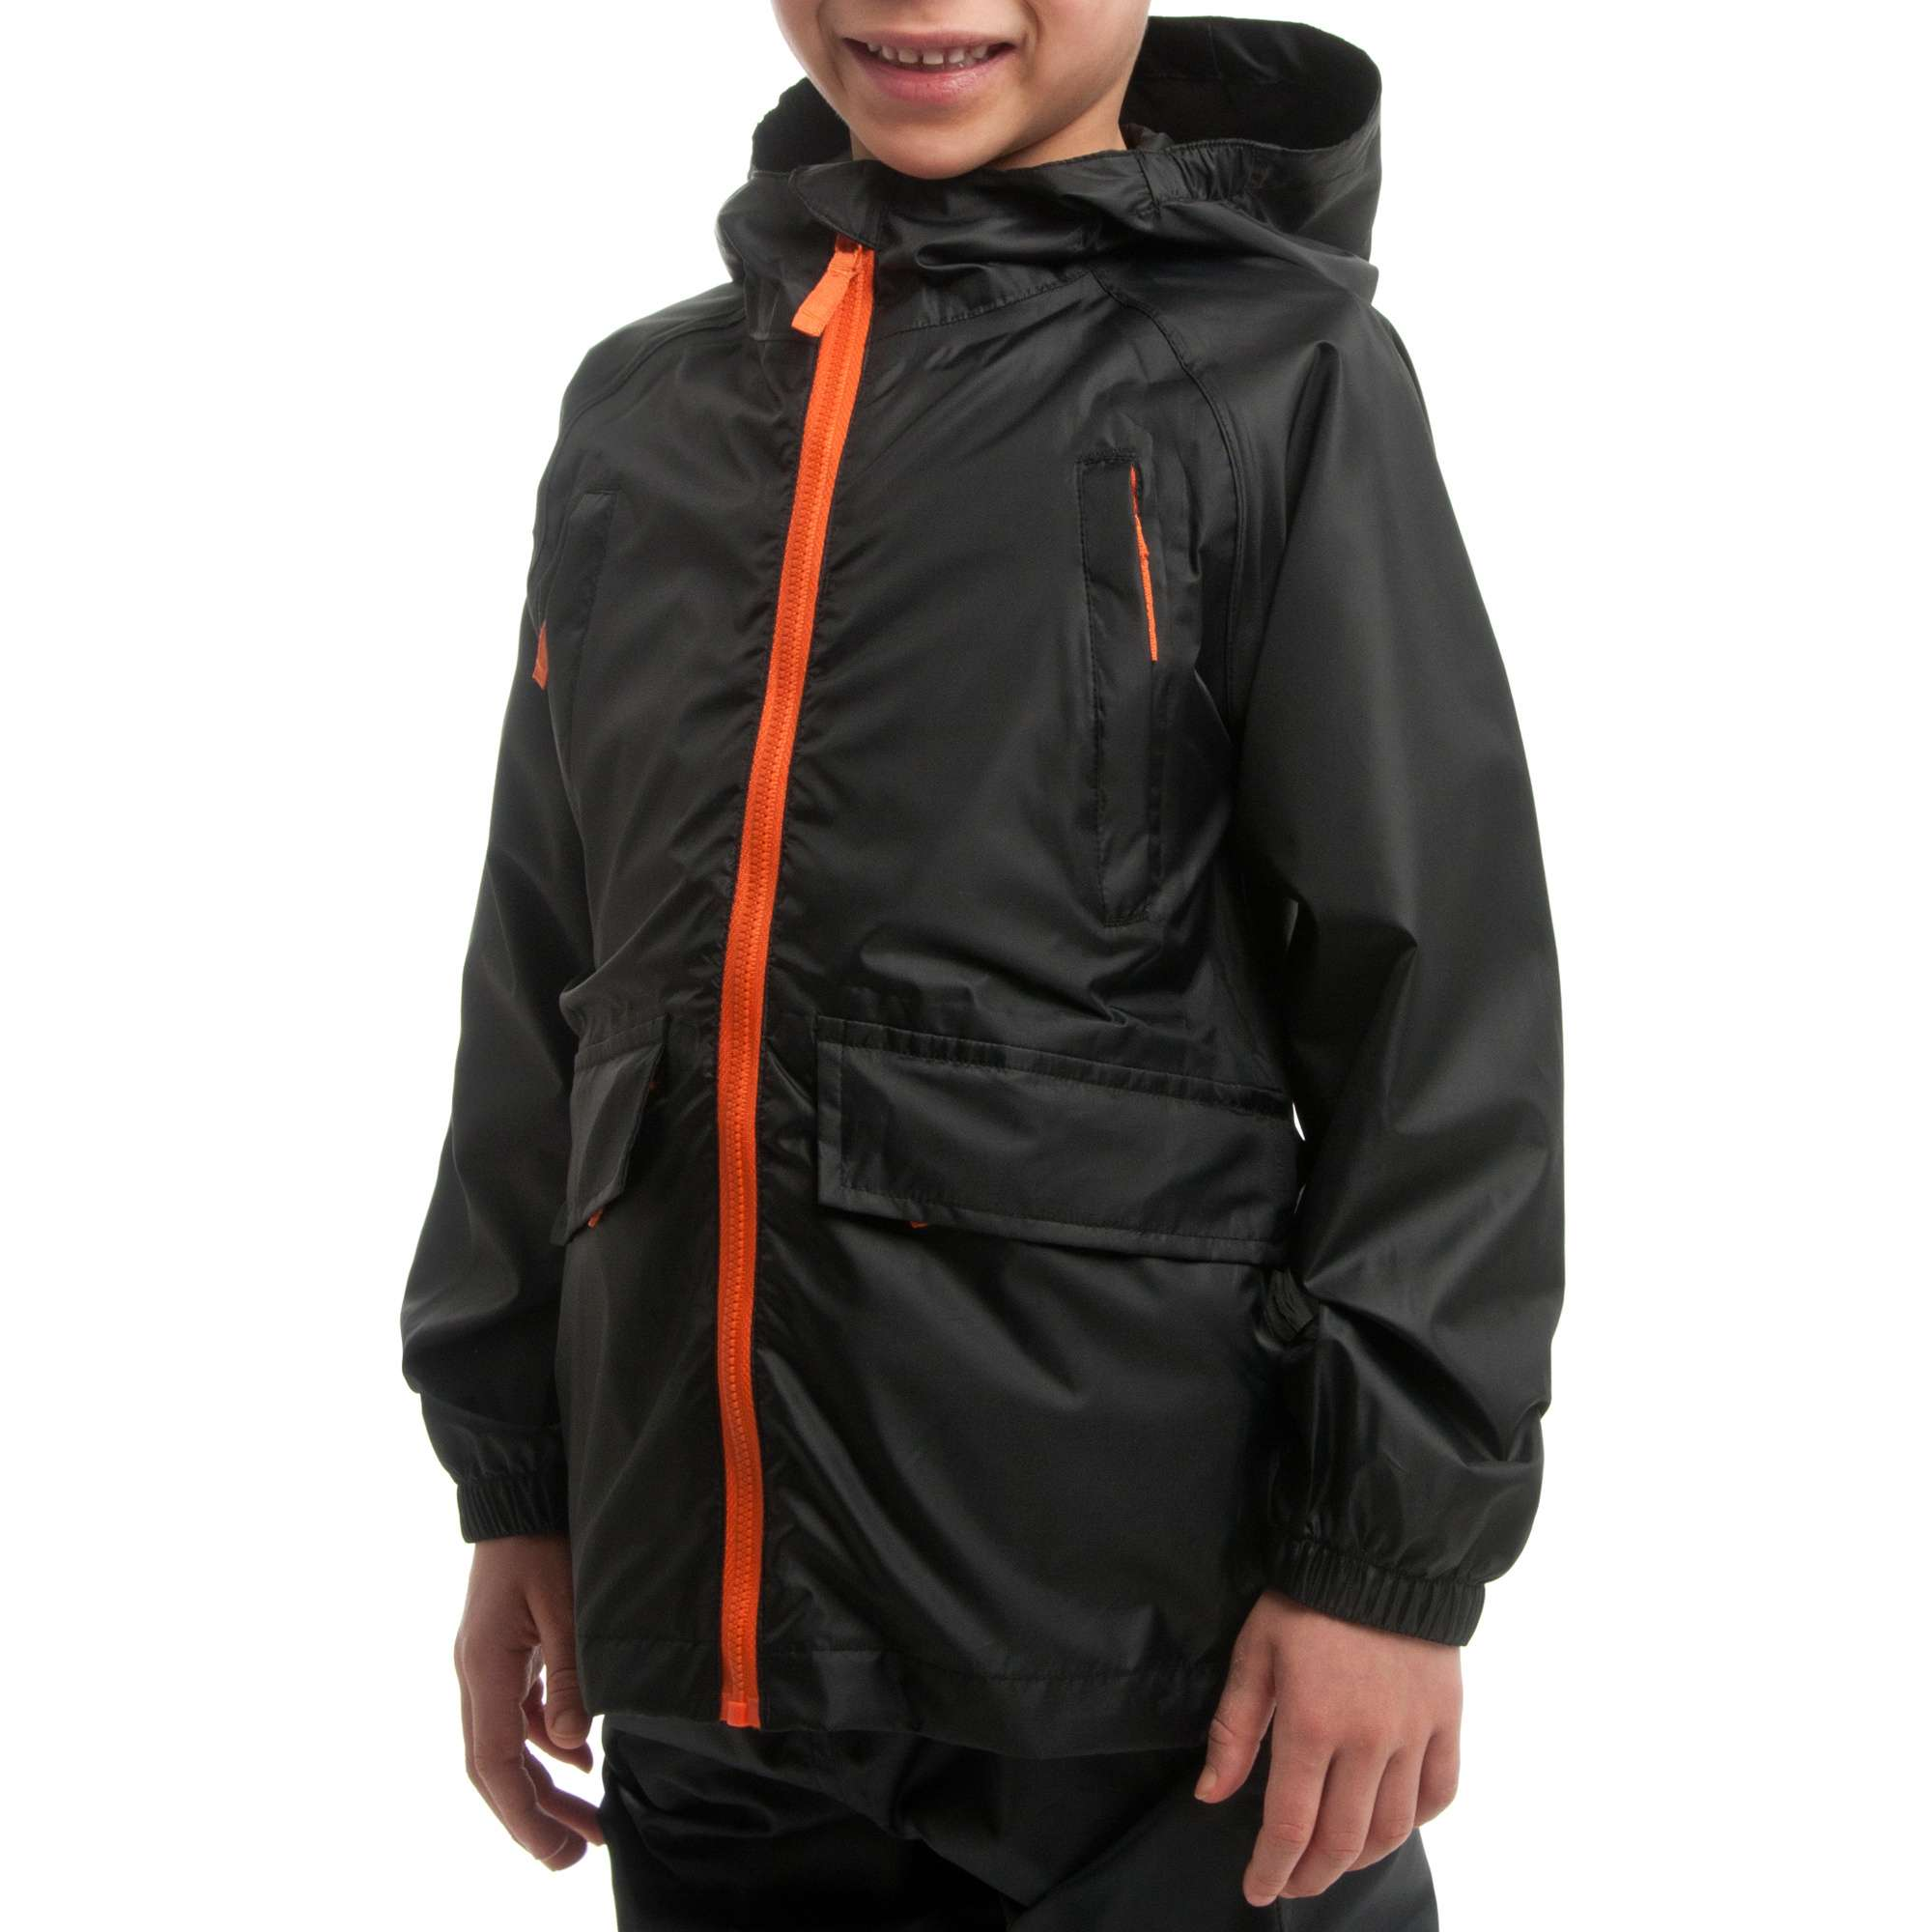 PETER STORM Boy's Parka-in-a-Pack